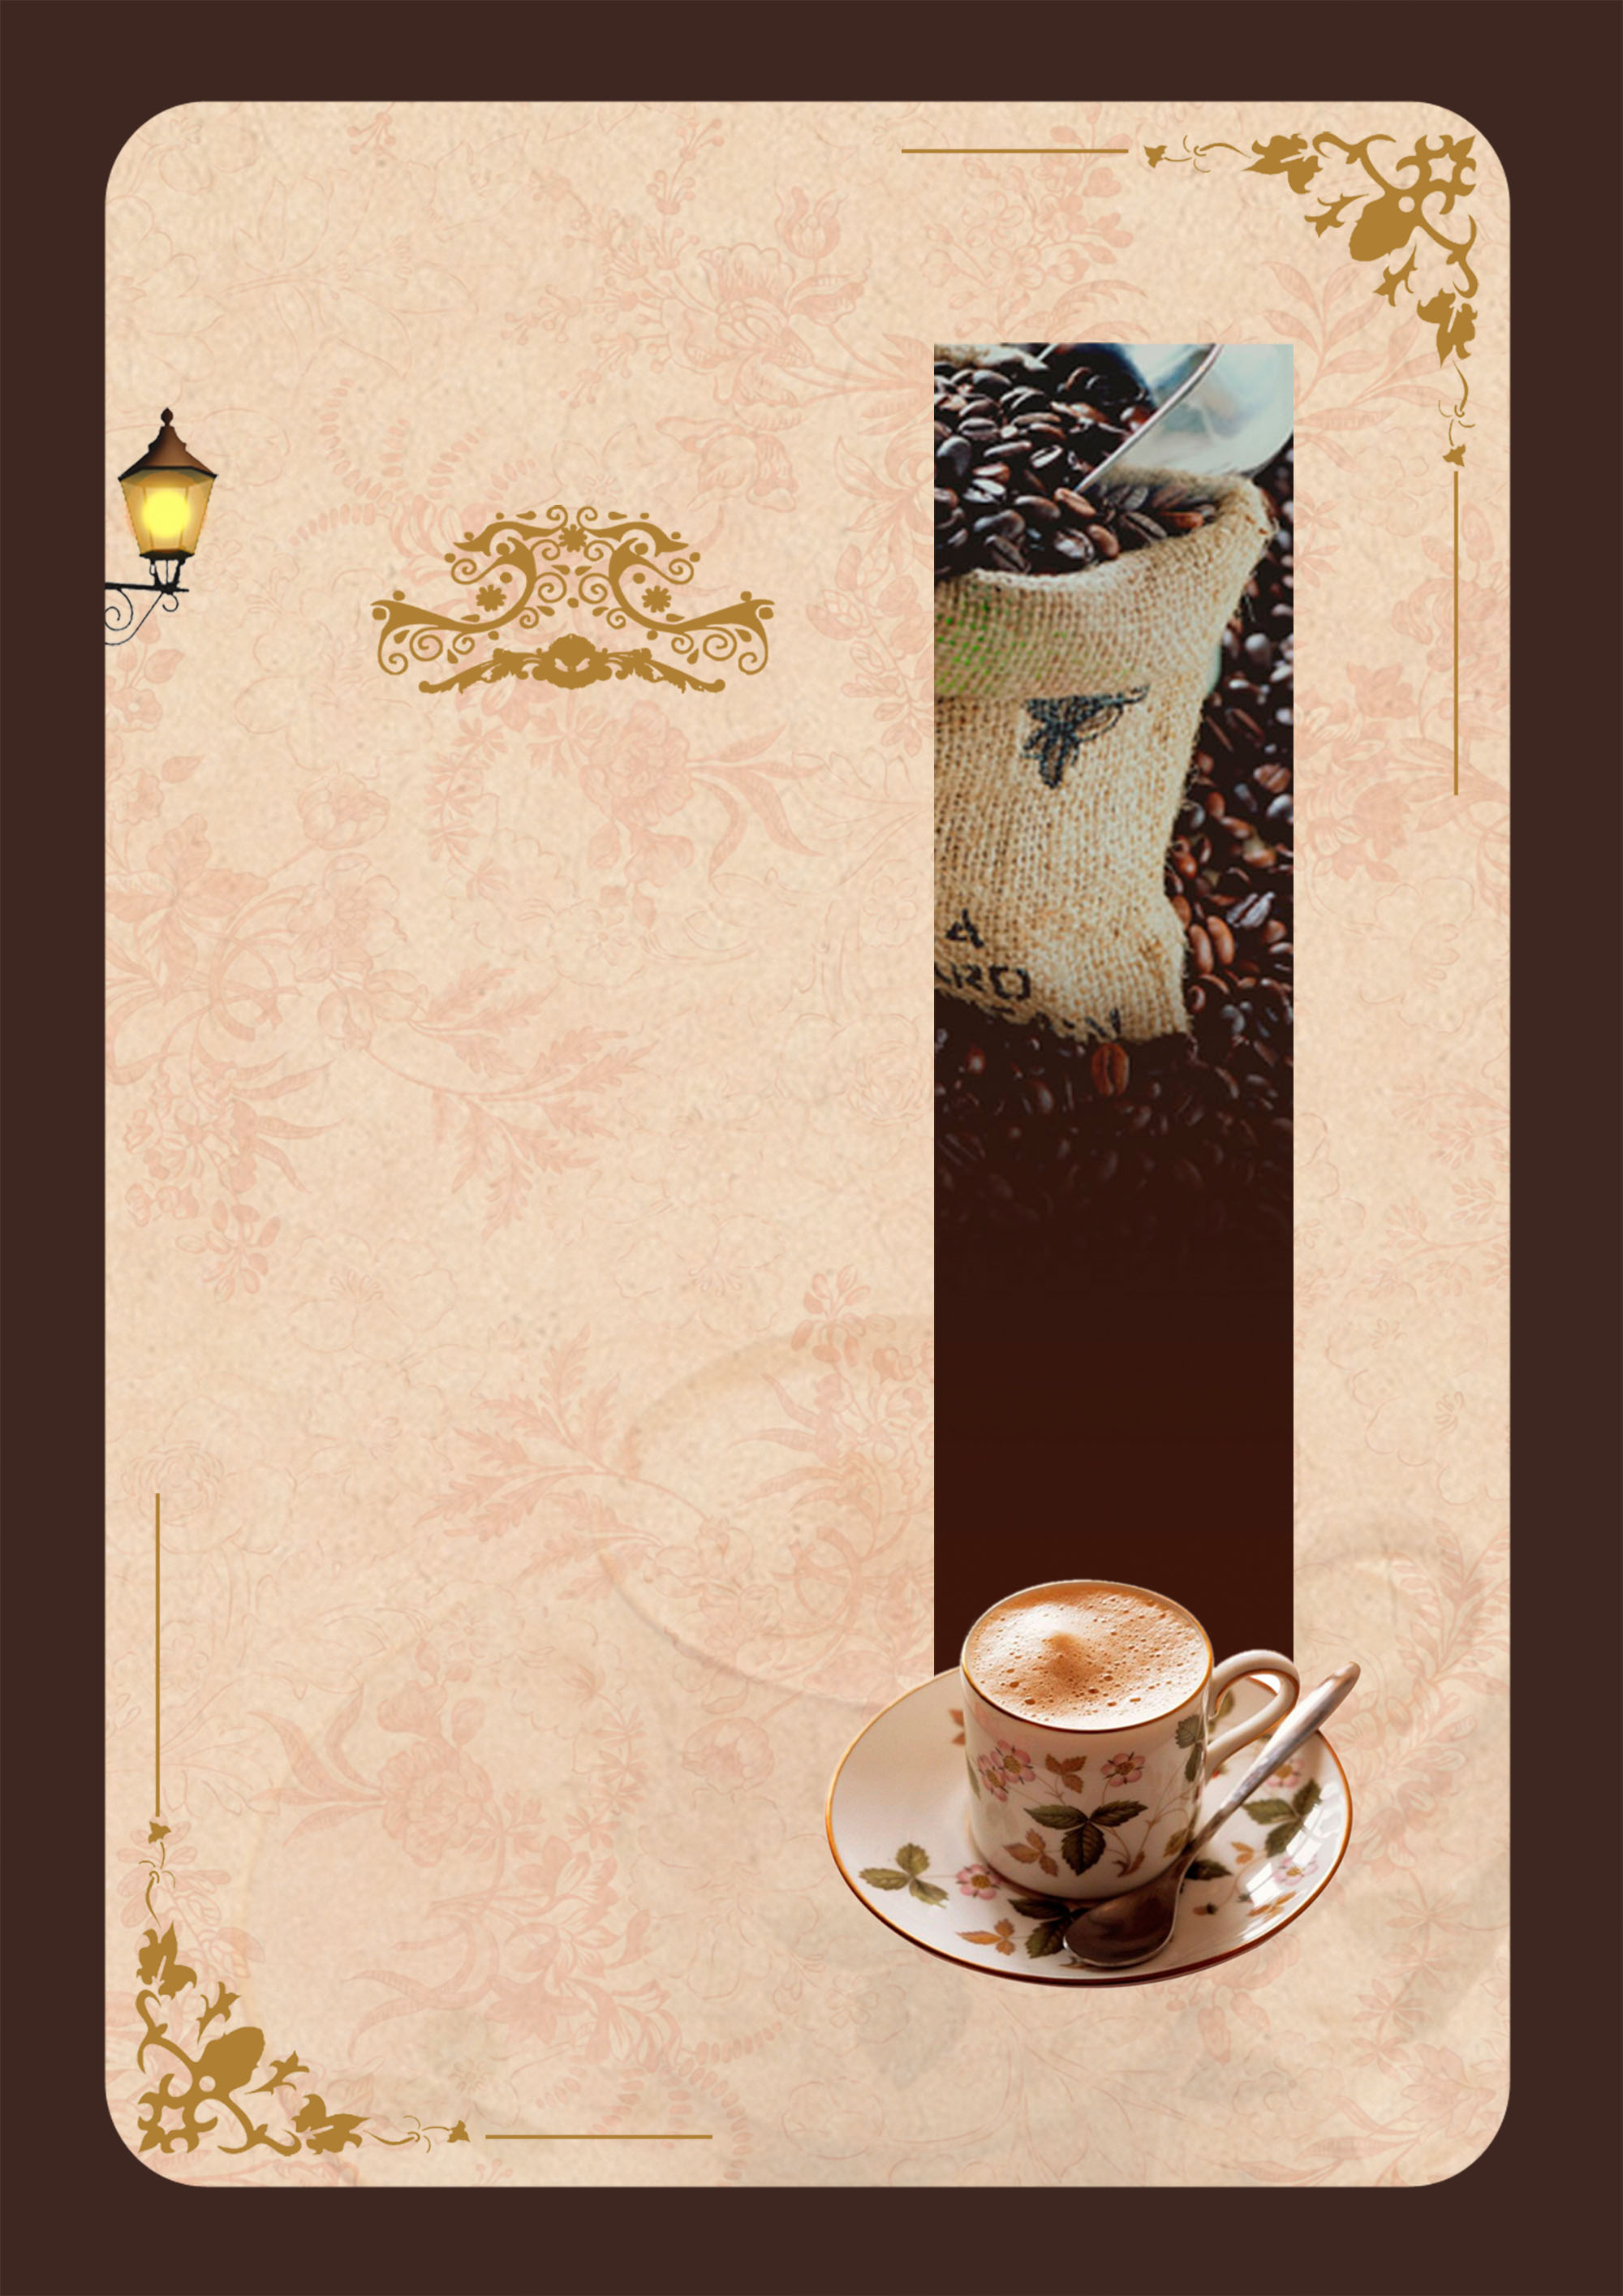 coffee carte menu of traditional pattern background